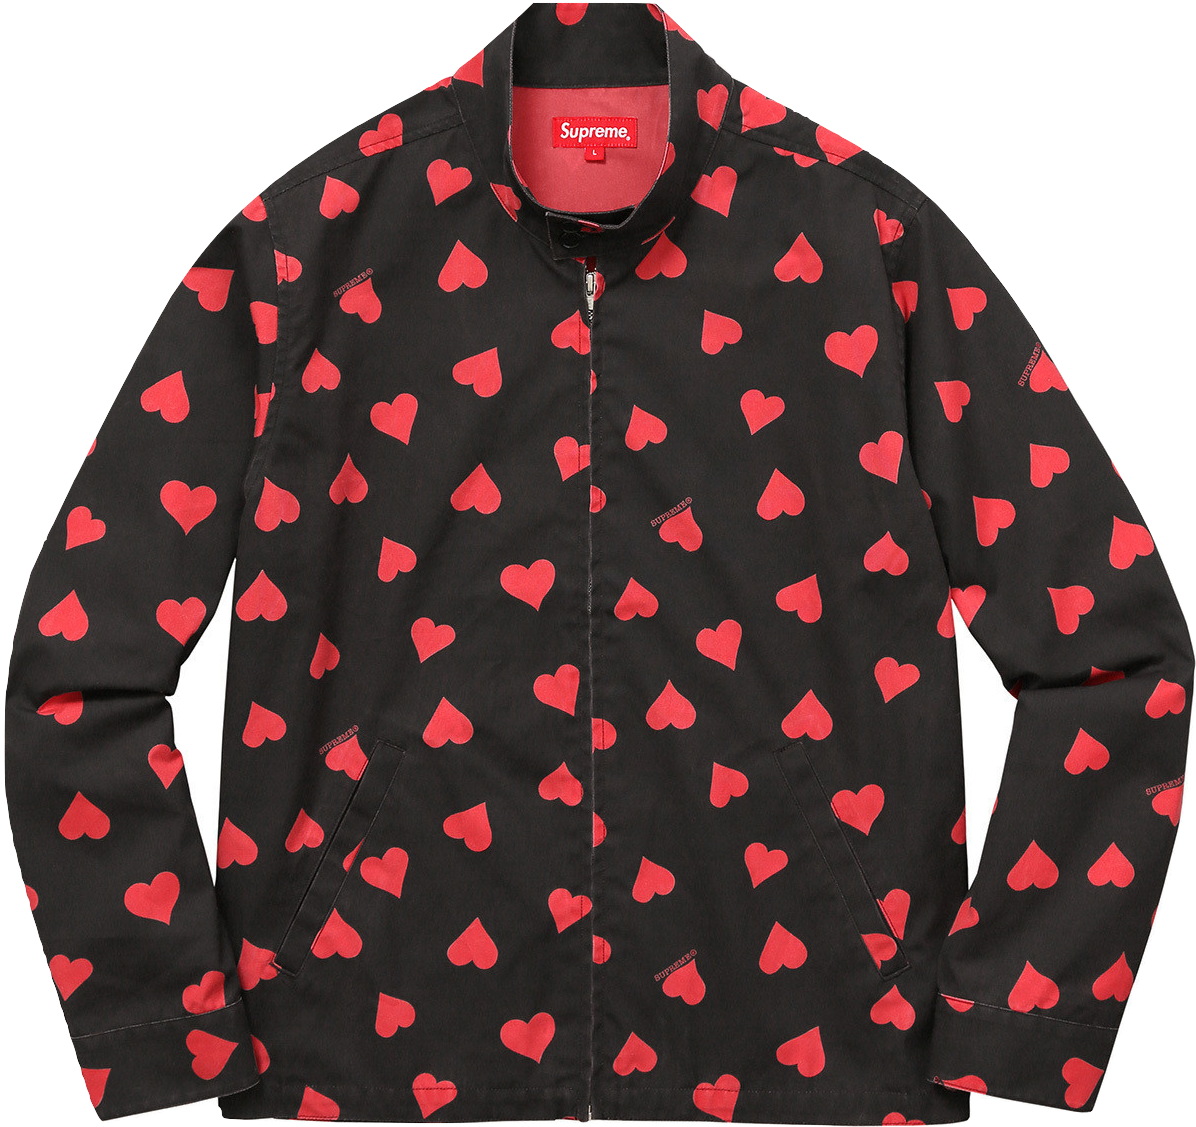 Supreme Heart Harrington Jacket